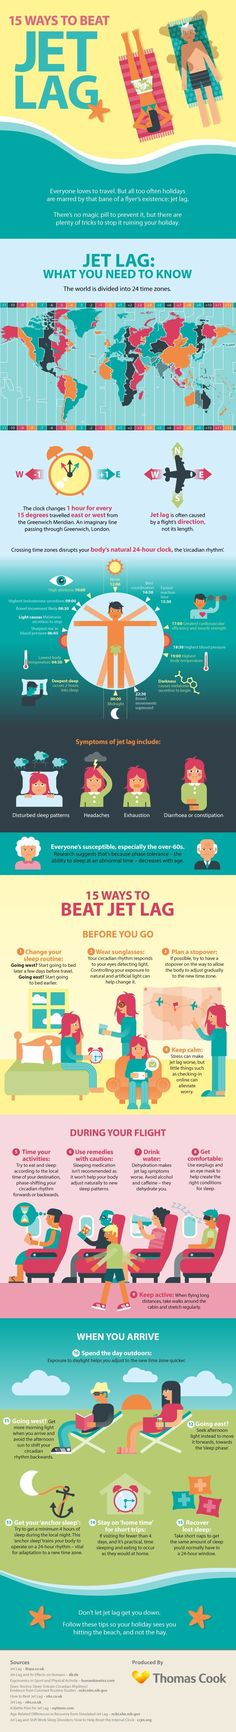 15 Not-So-Obvious Ways To Beat Jet Lag